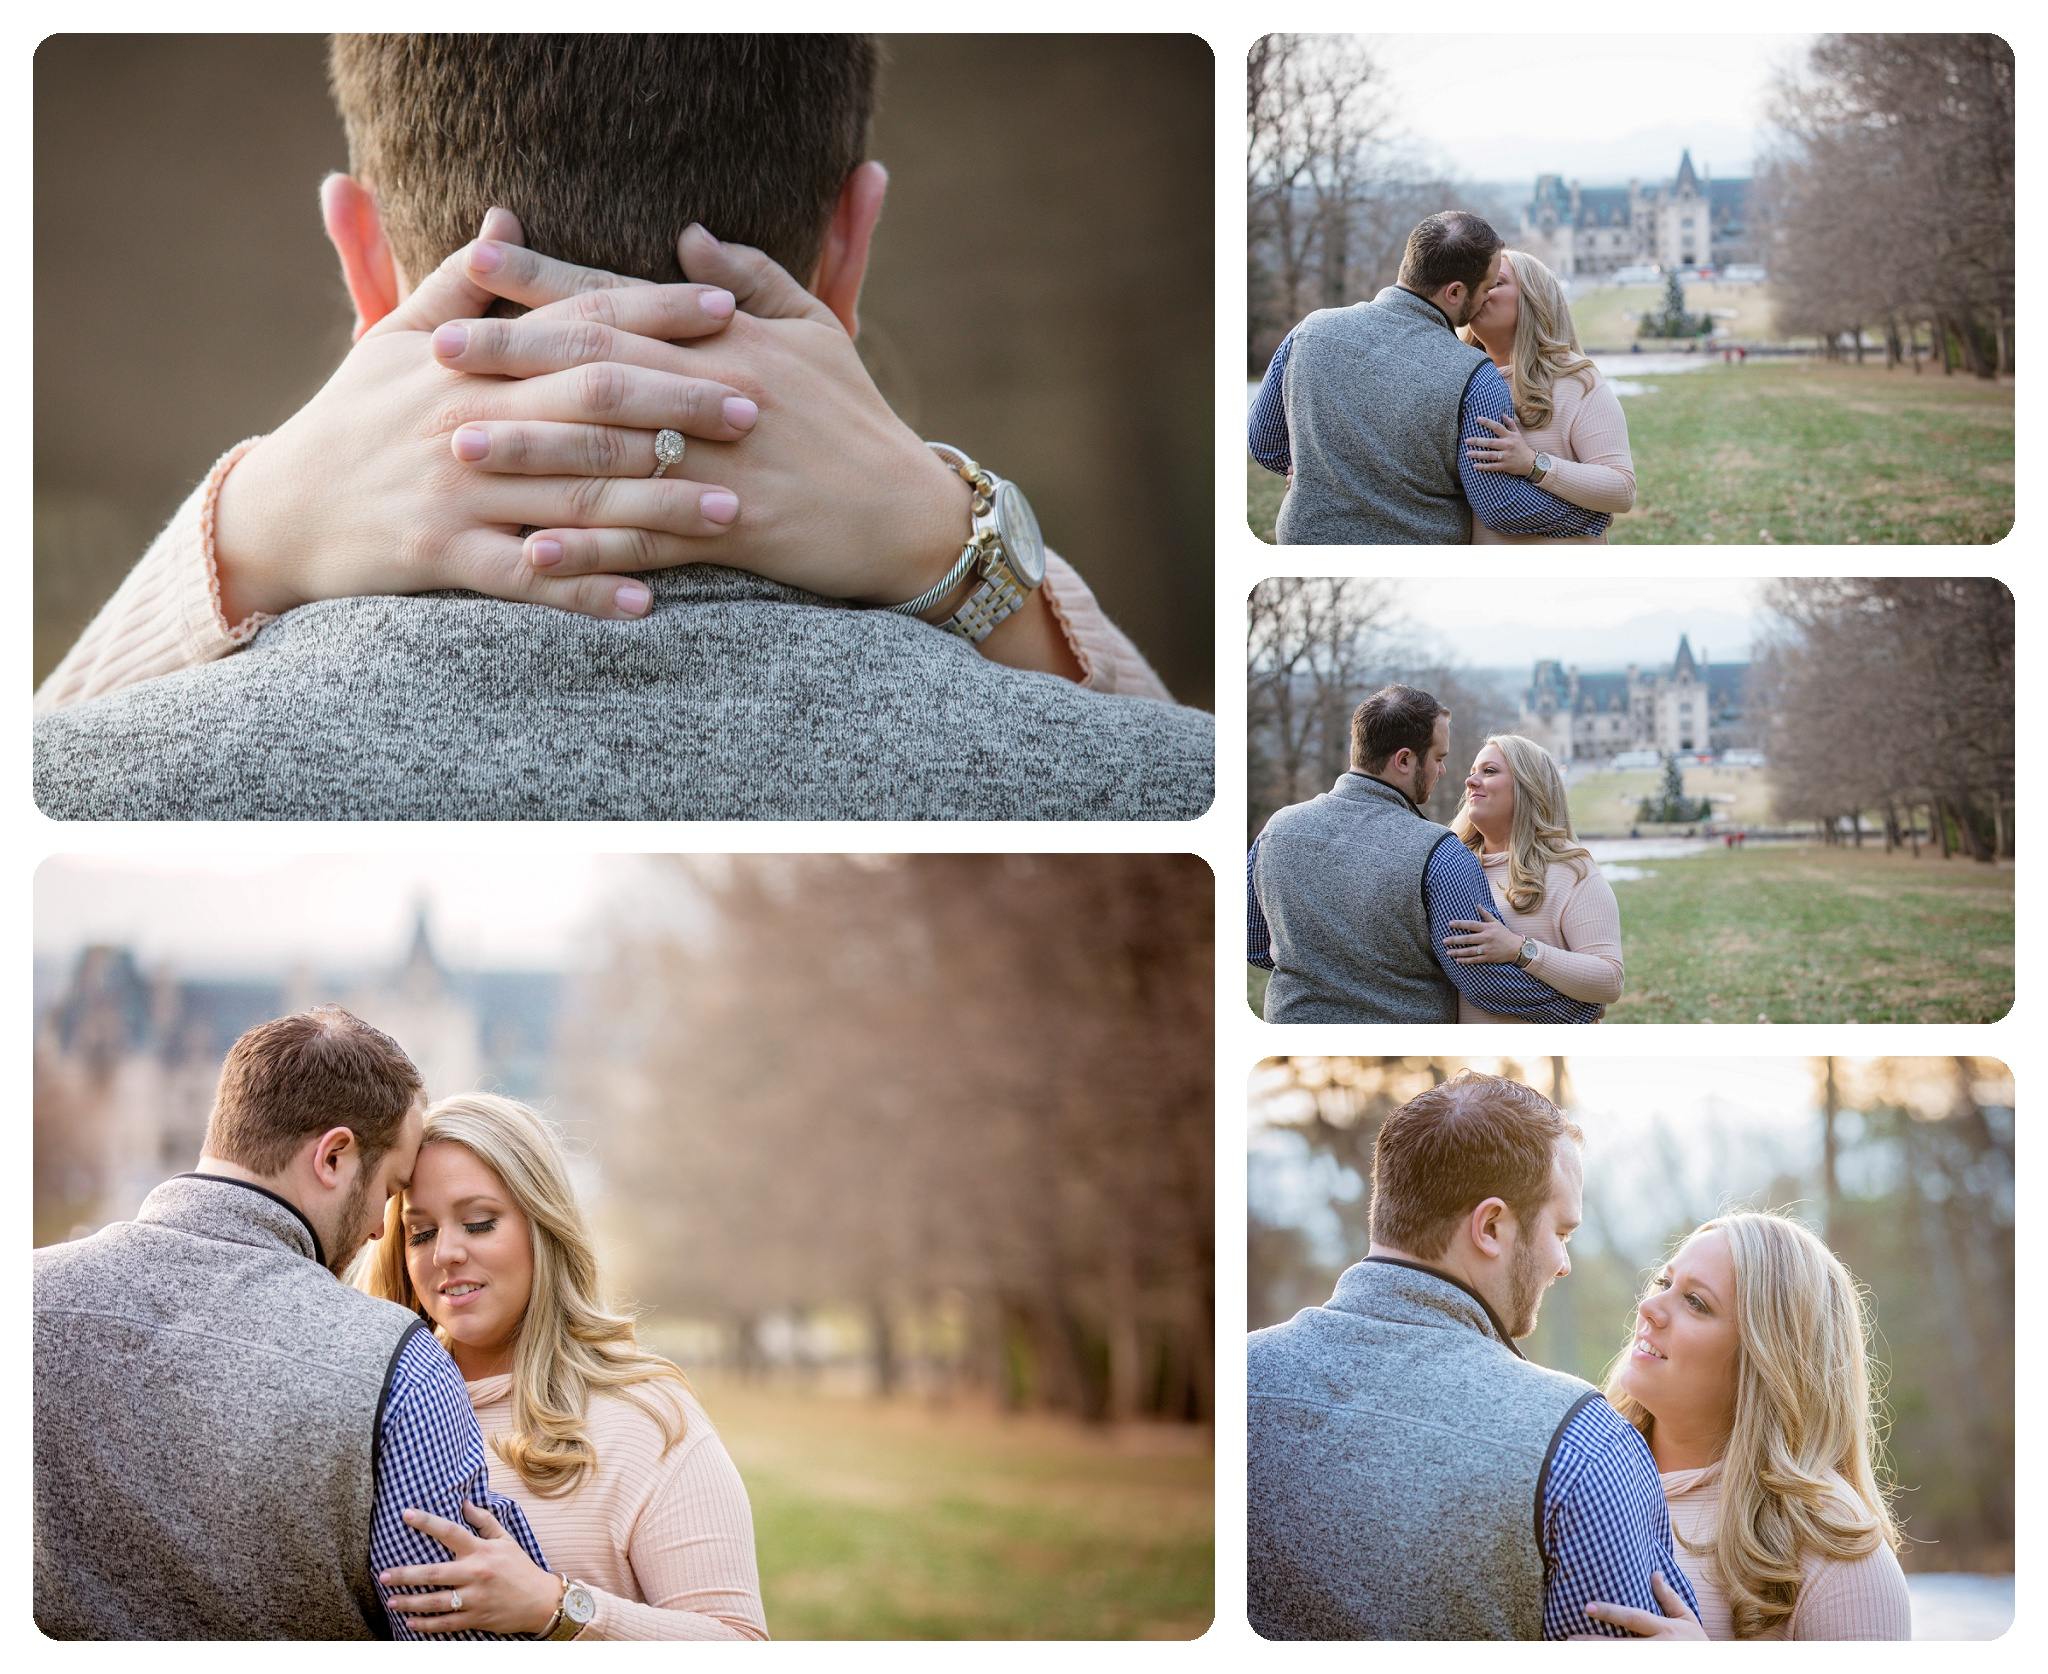 Surprise proposal at Biltmore Estate in Asheville NC on Diana Hill - 4